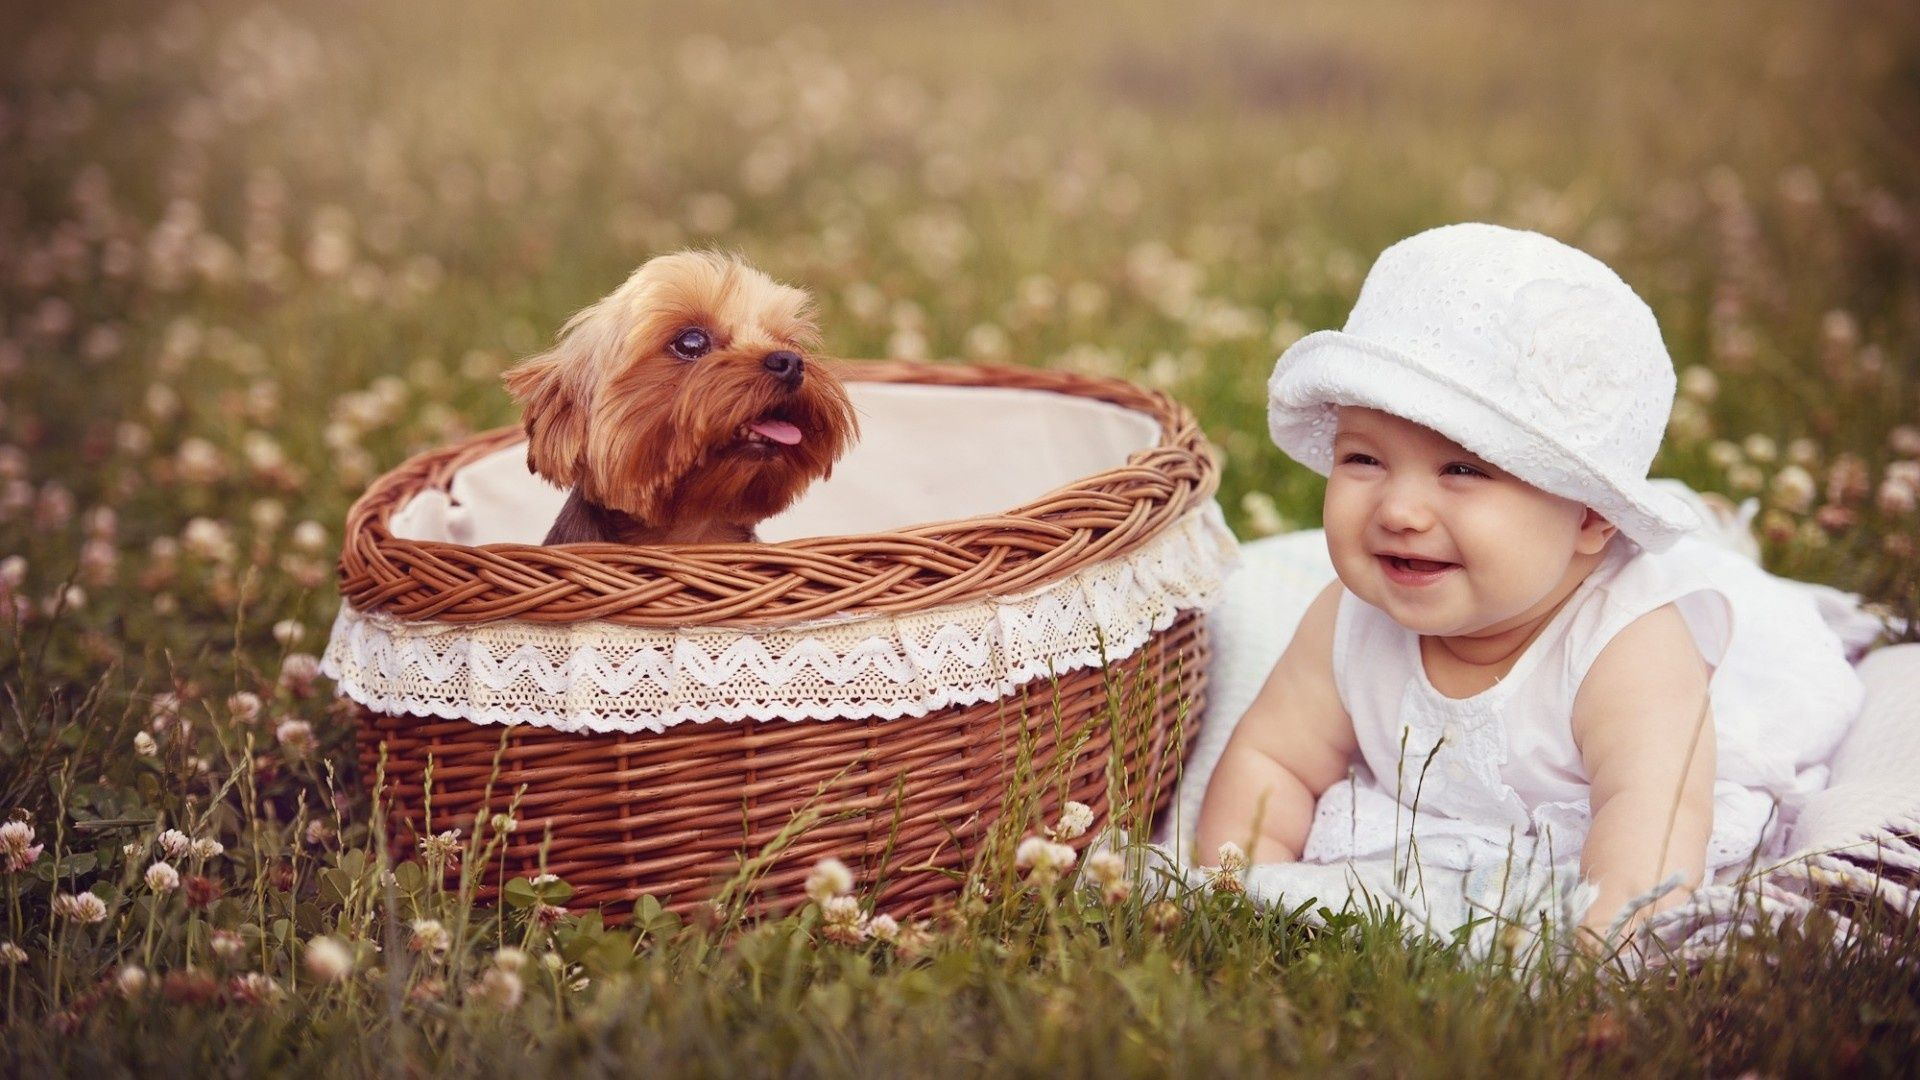 pin by hdpicorner on desktop wallpapers cute baby wallpaper baby